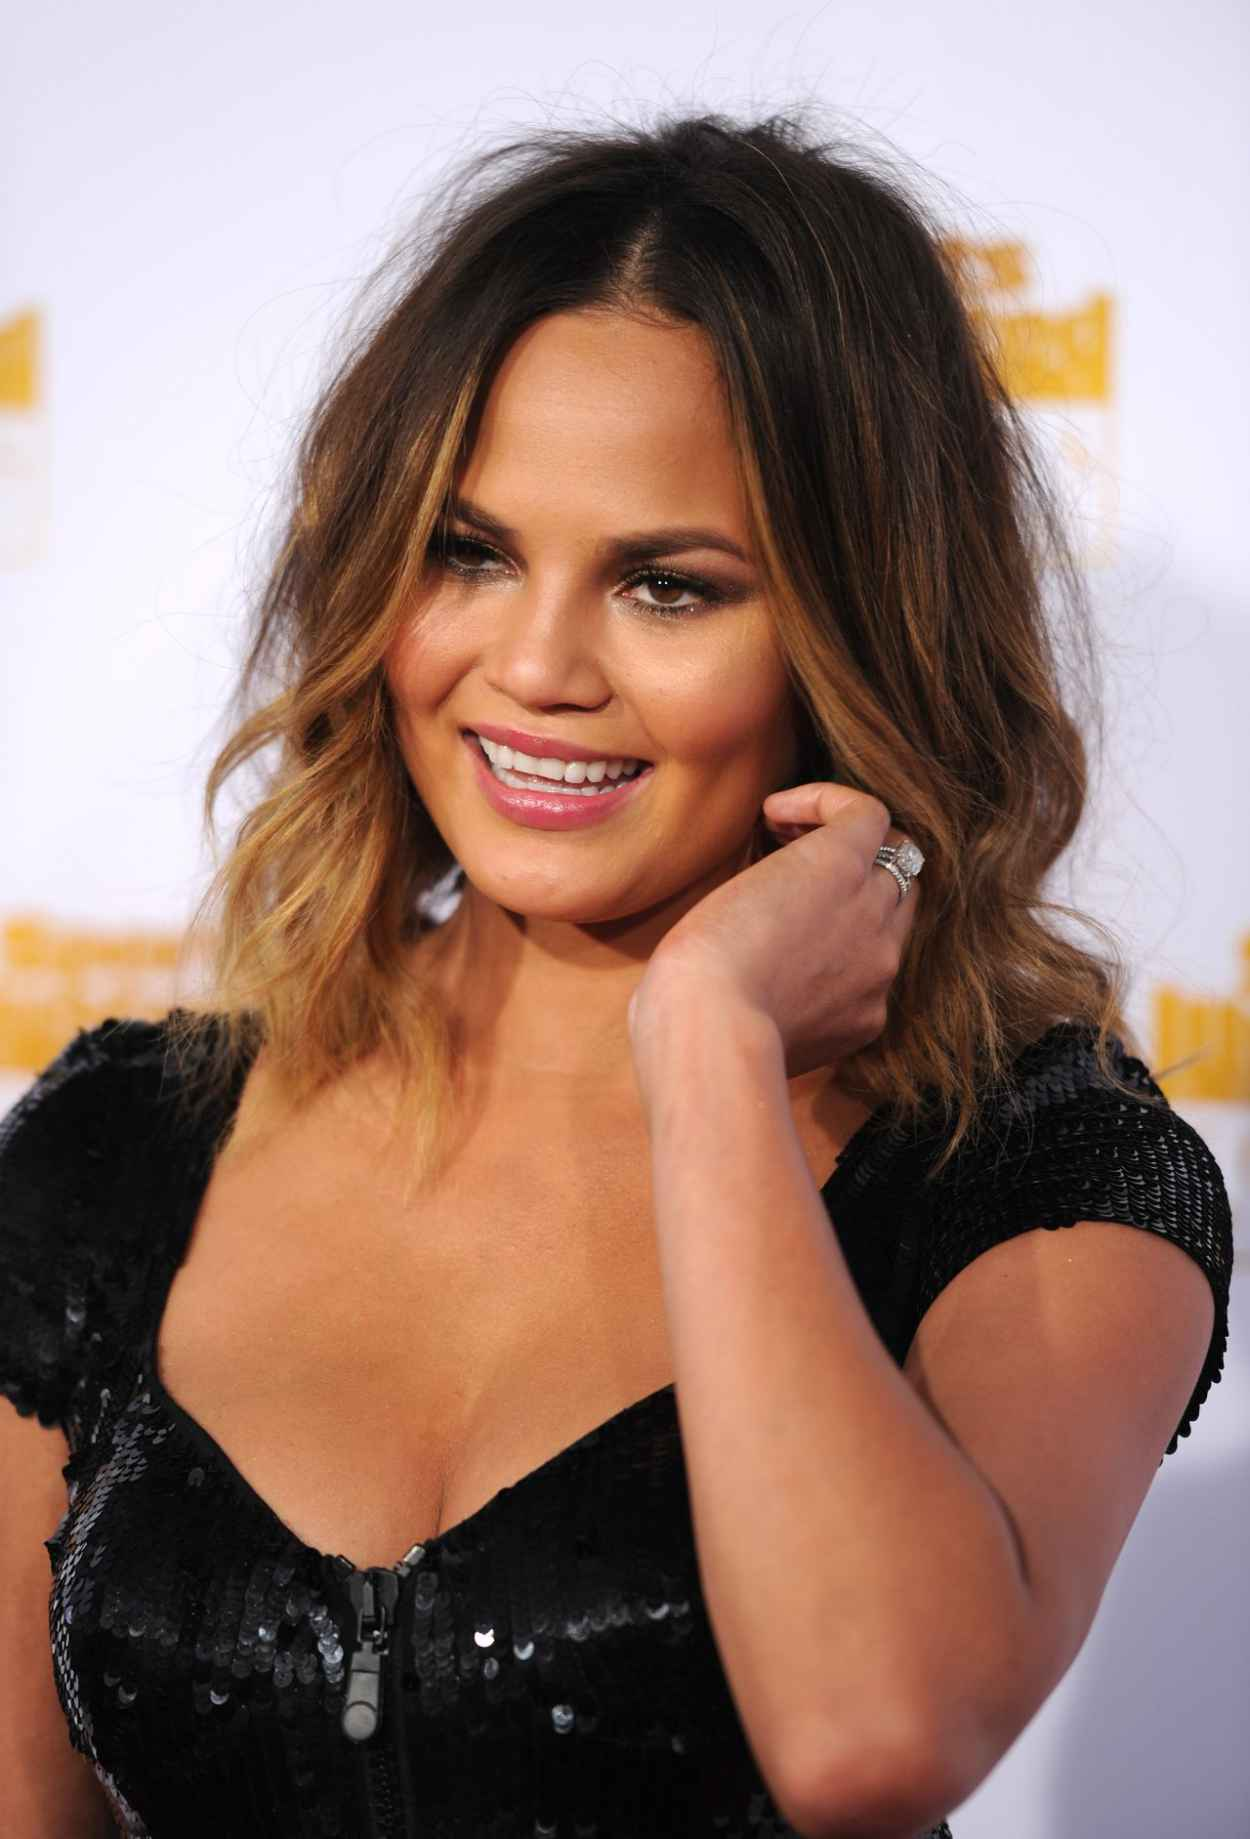 Chrissy Teigen at 50th Anniversary of the SI Swimsuit Issue in Hollywood, January 2015-1